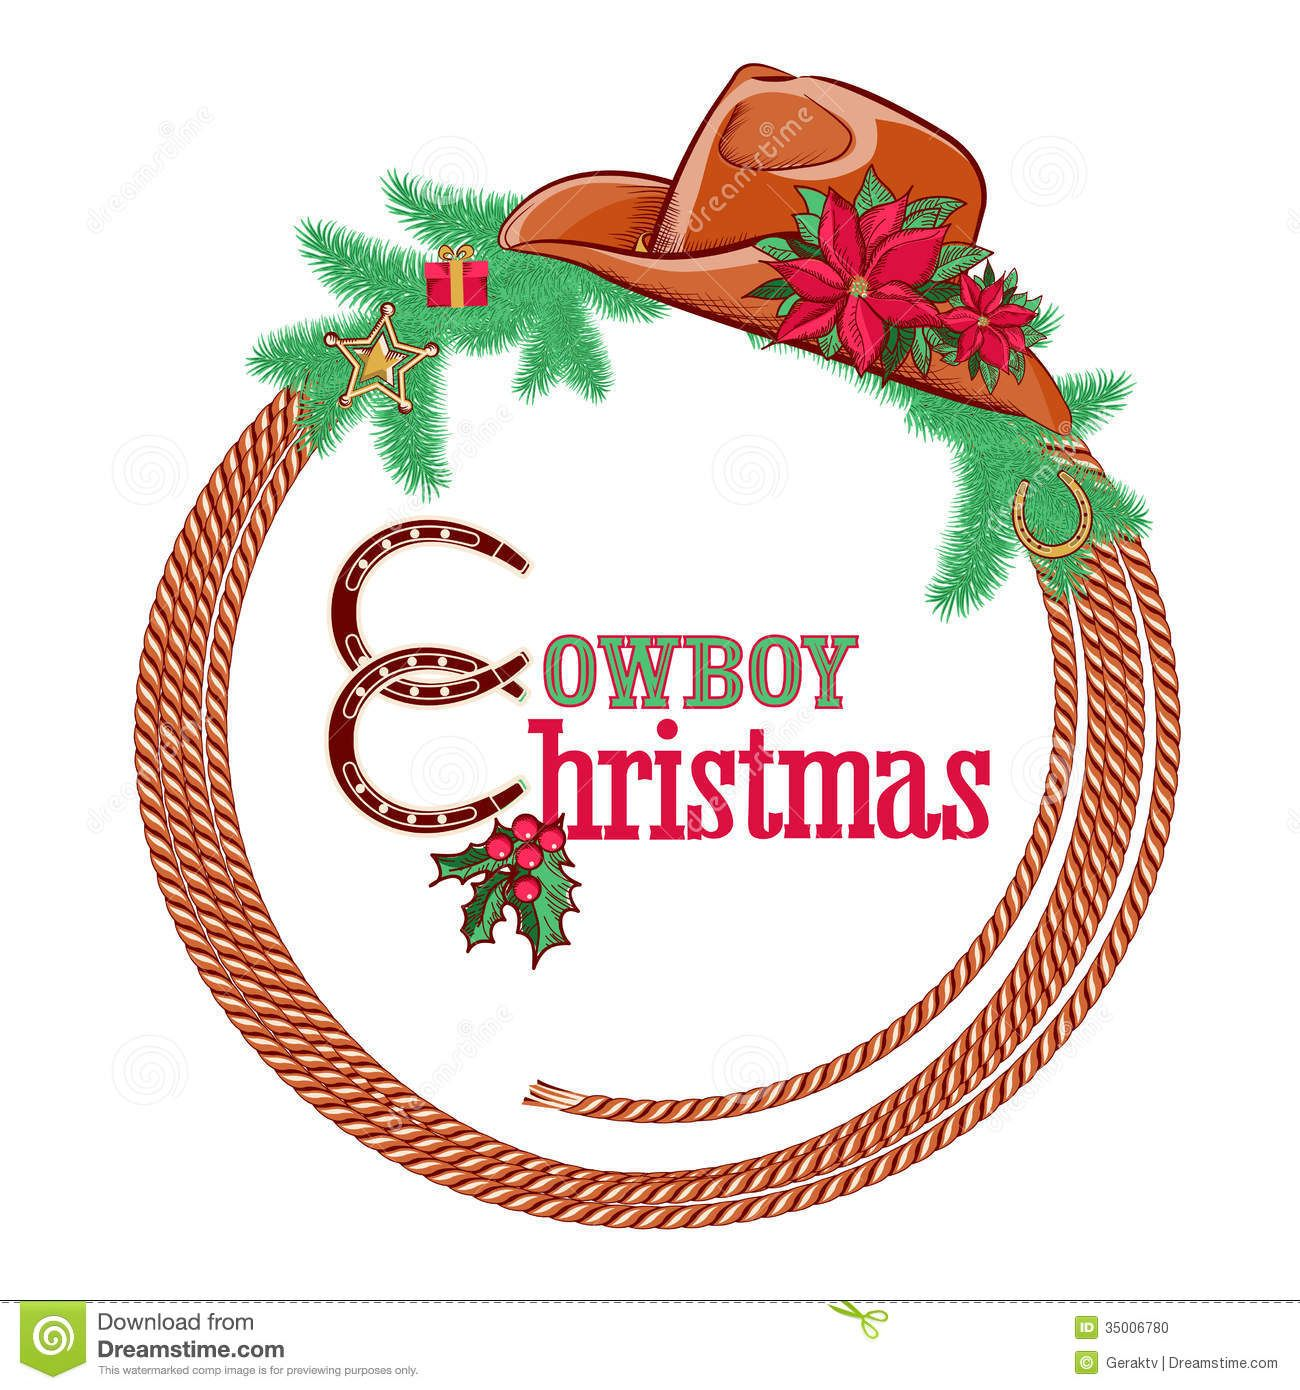 Pin by Reba Gibbons on A Very Merry CHRISTmas . | Cowboy christmas ... graphic royalty free download